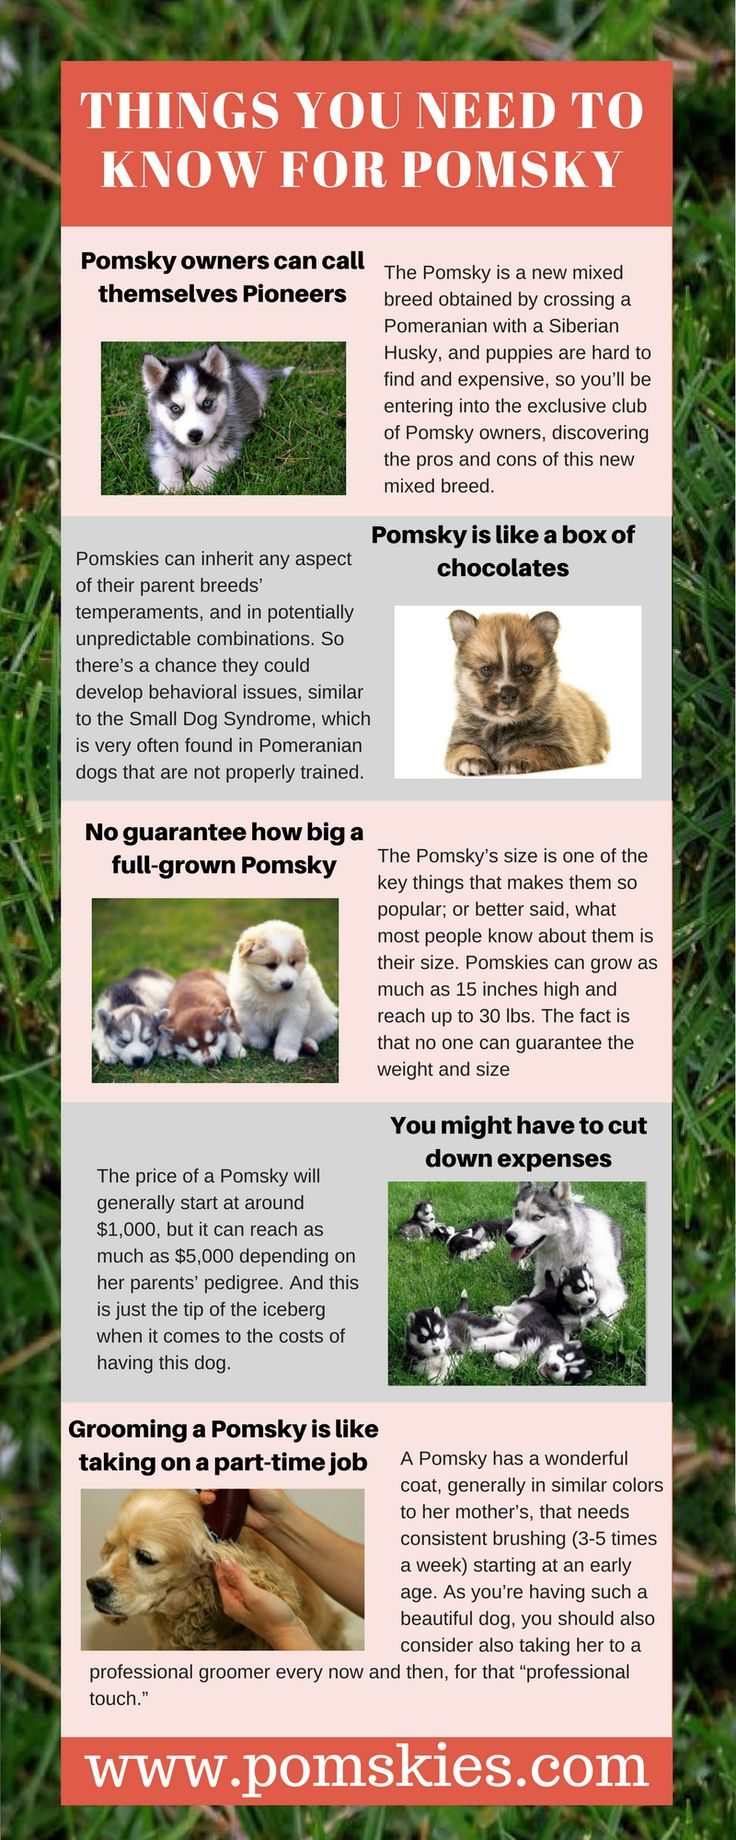 #Pomsky puppies are so cute, loving, intelligent and energetic dog. Anyone who think to adopt a Pomsky puppy, get to know all information about it. In this infographic, I have listed some tips that help you for buying a Pomskies. http://www.pomskies.com/top-personality-temperament-traits-pomsky/